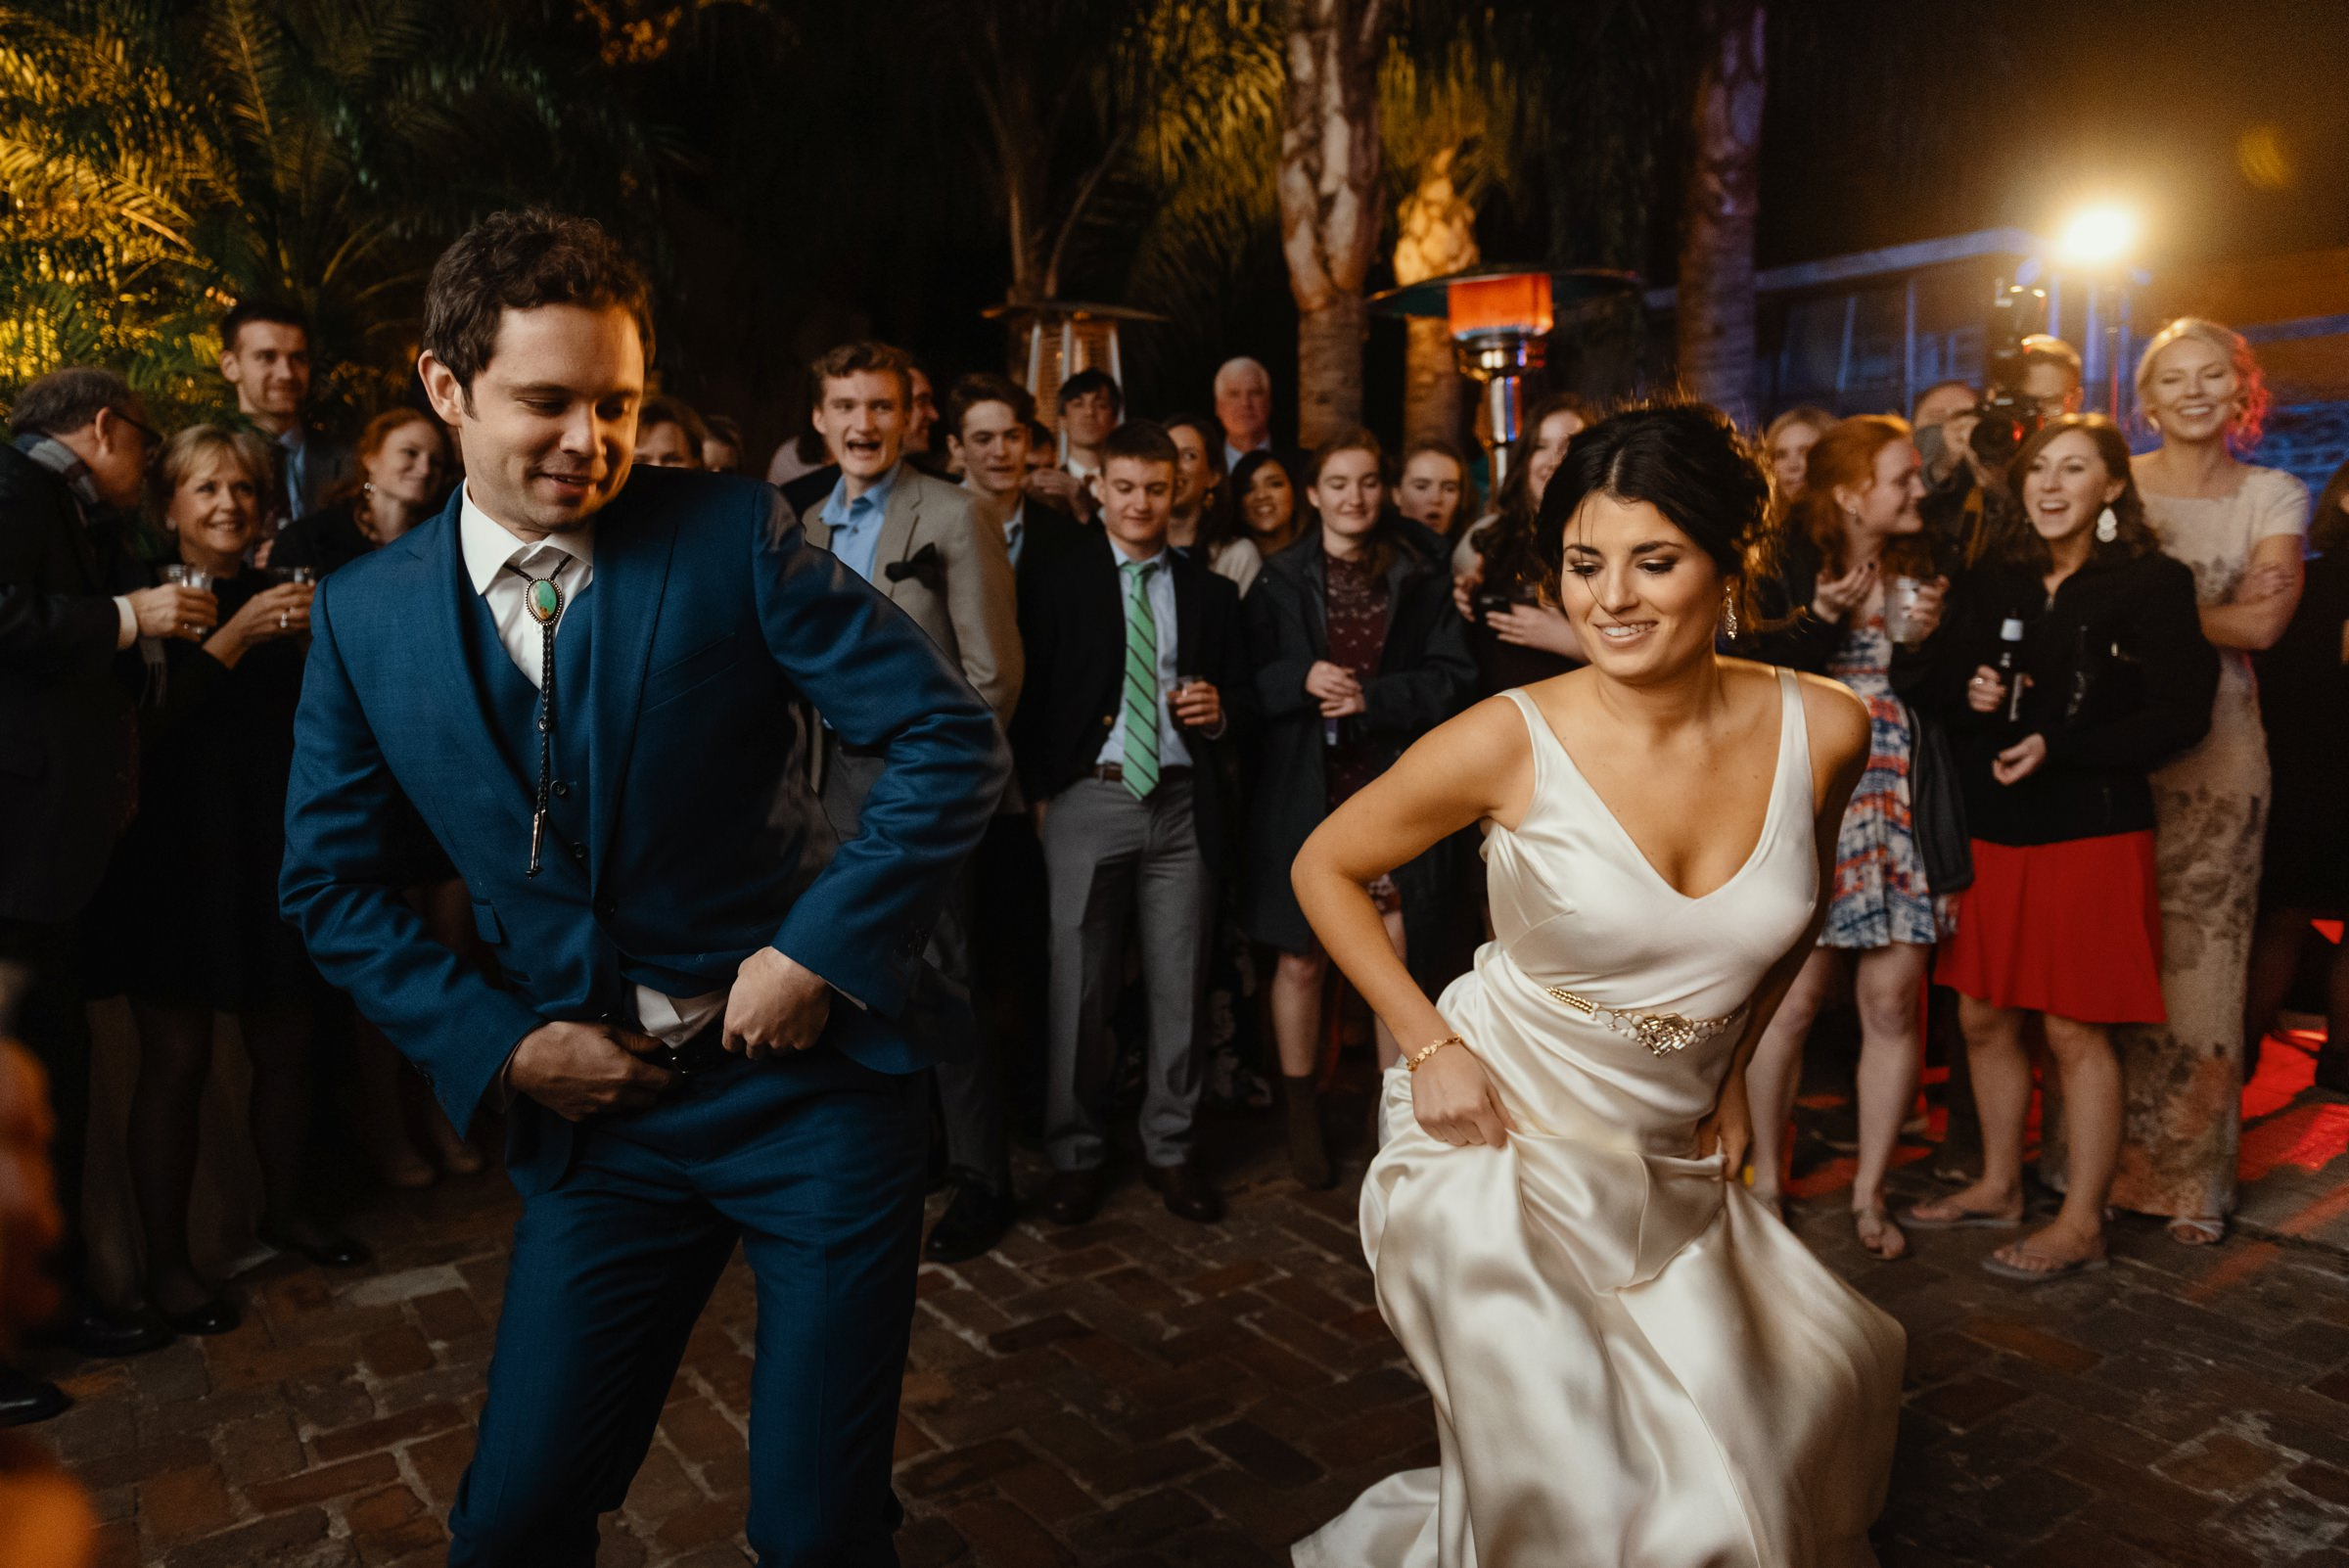 bride and groom dancing in the middle of the dance floor-groom-in-white-tuxedo-dancing-under-arms-of-groomsm- photo by Dark Roux